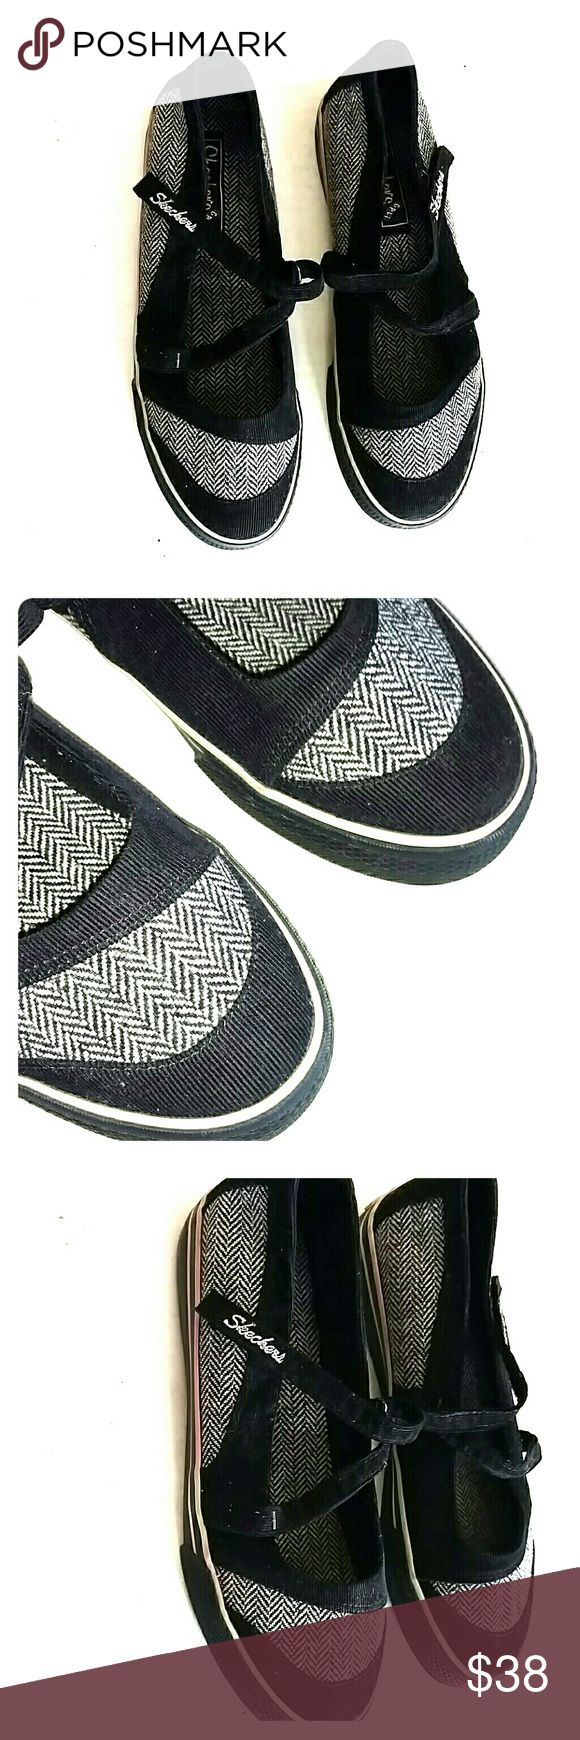 SKECHERS BLACK TWEED MARY JANES Design as Shown Very Gently Used Condition Mary Jane Style w Velcro Closure Skechers Shoes